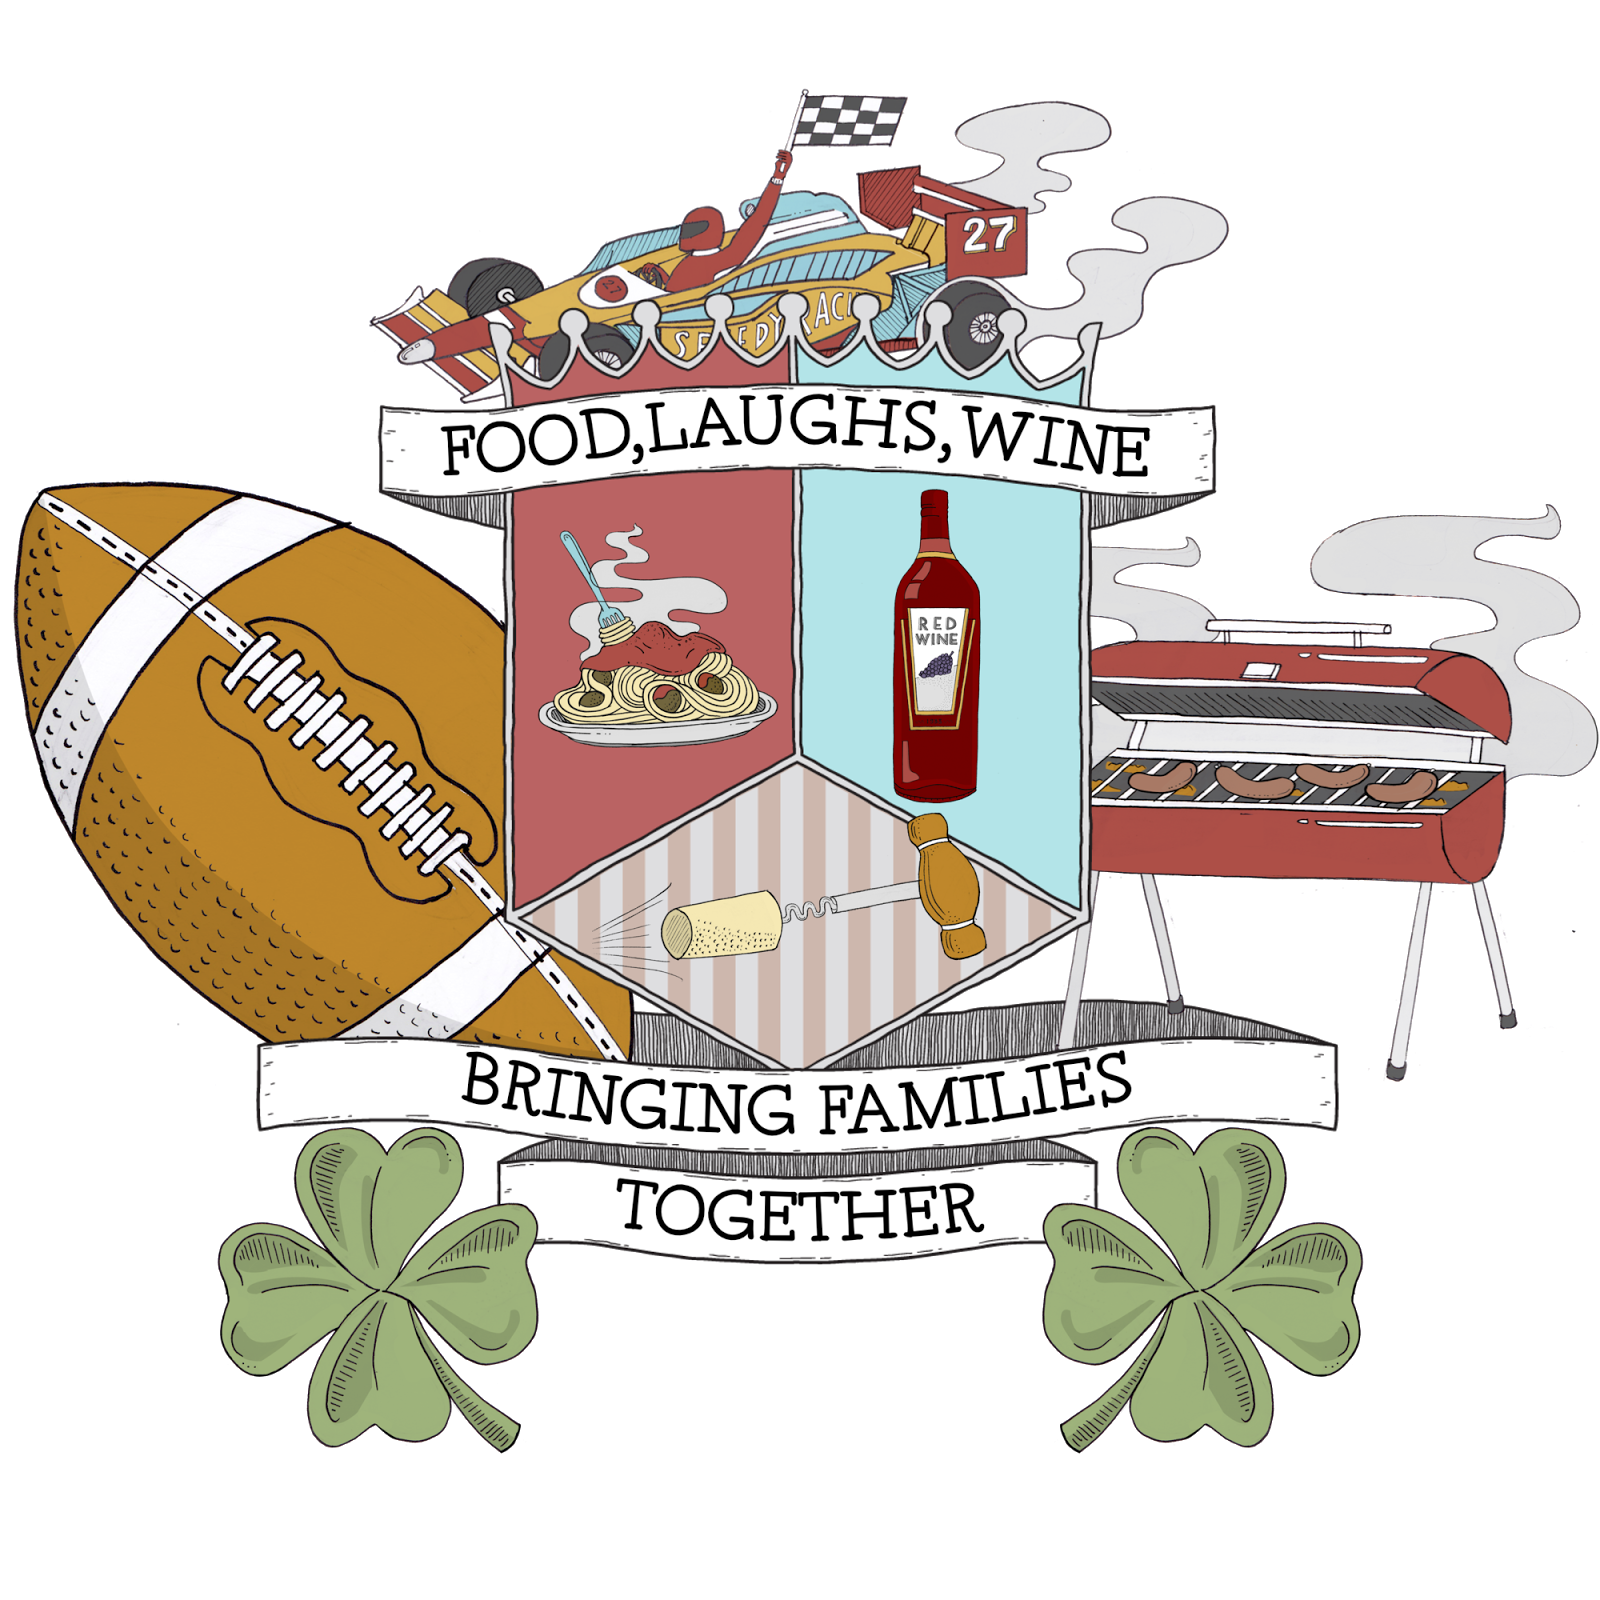 Cousins clipart togetherness. A different definition of